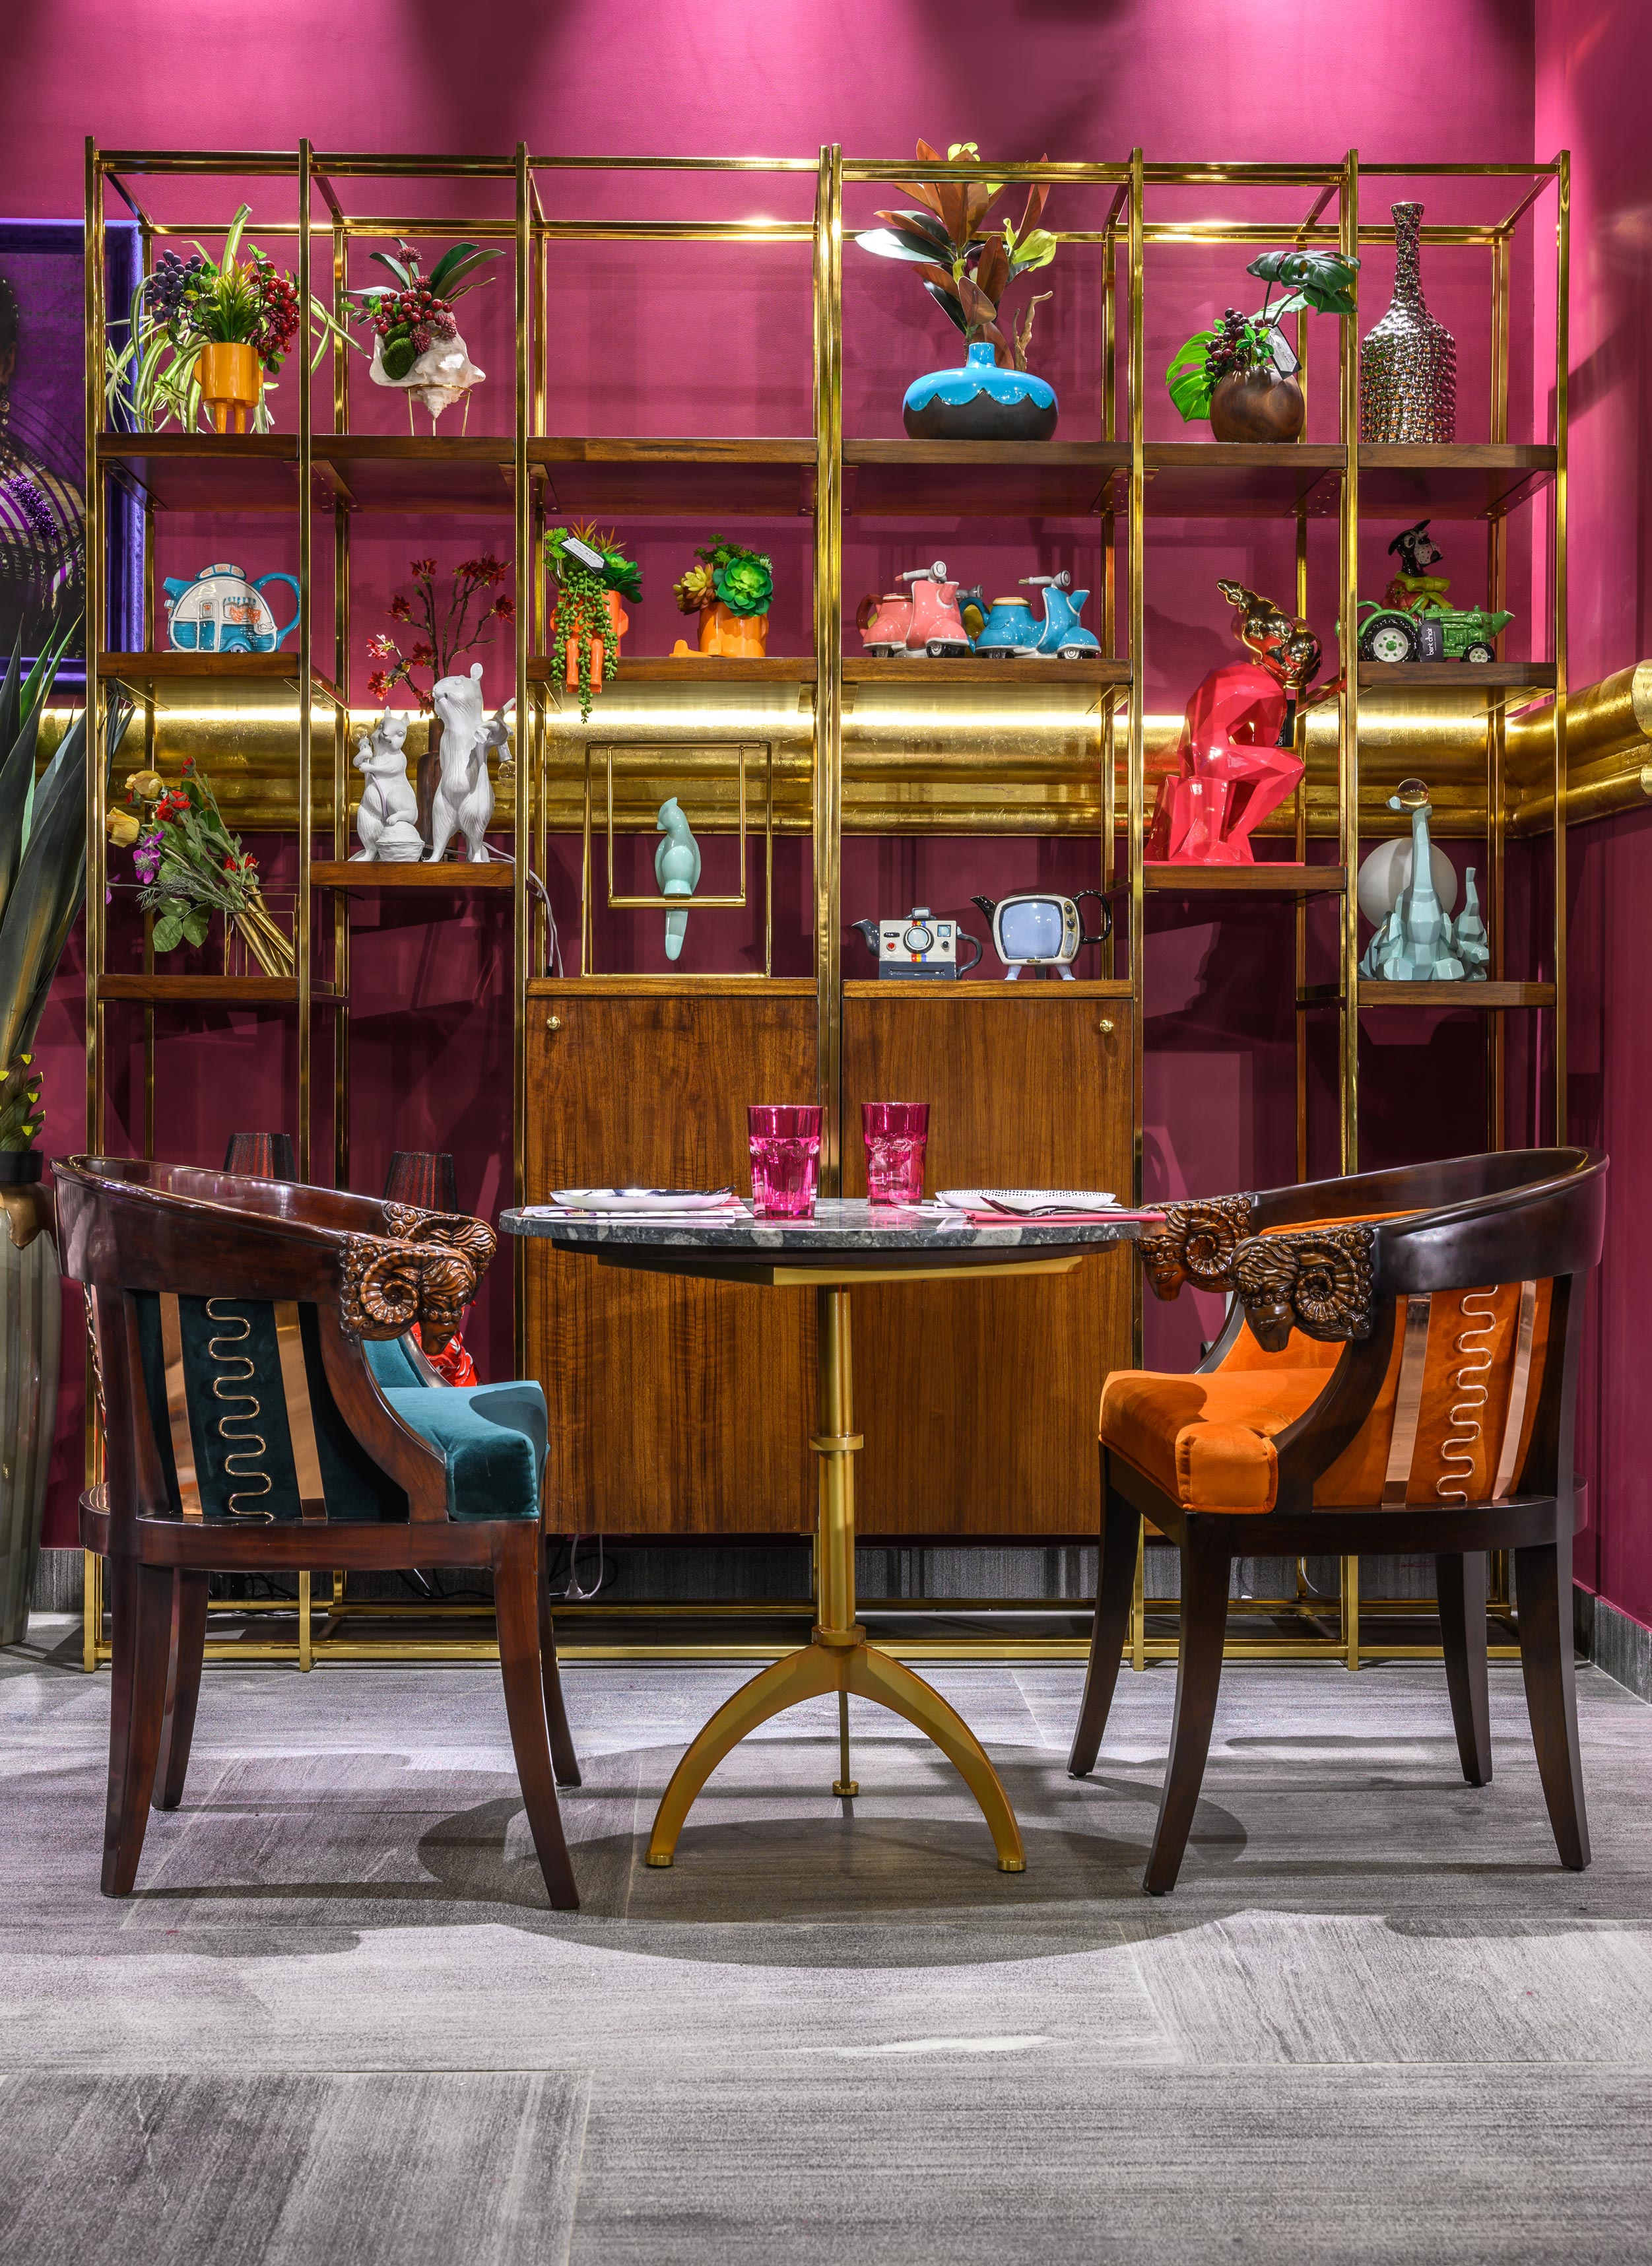 Sofa Industrial Alice Would Feel At Home In Delhi's New Wonderland Plum By